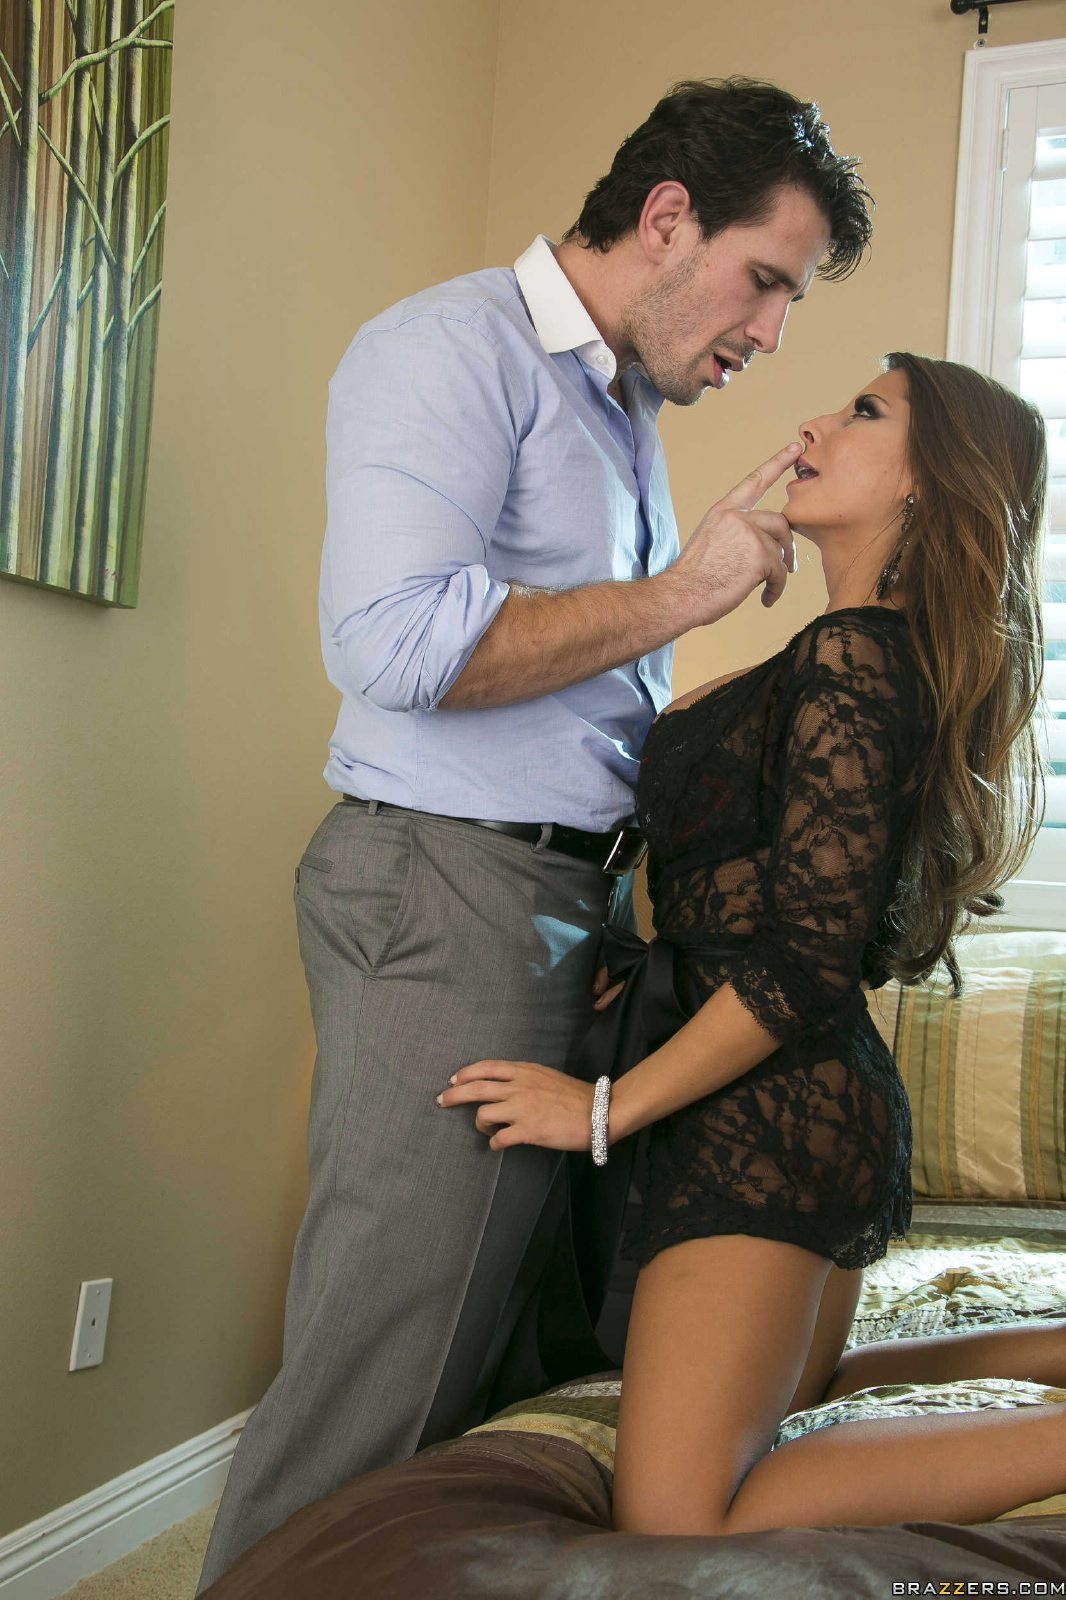 Brazzers madison ivy anal